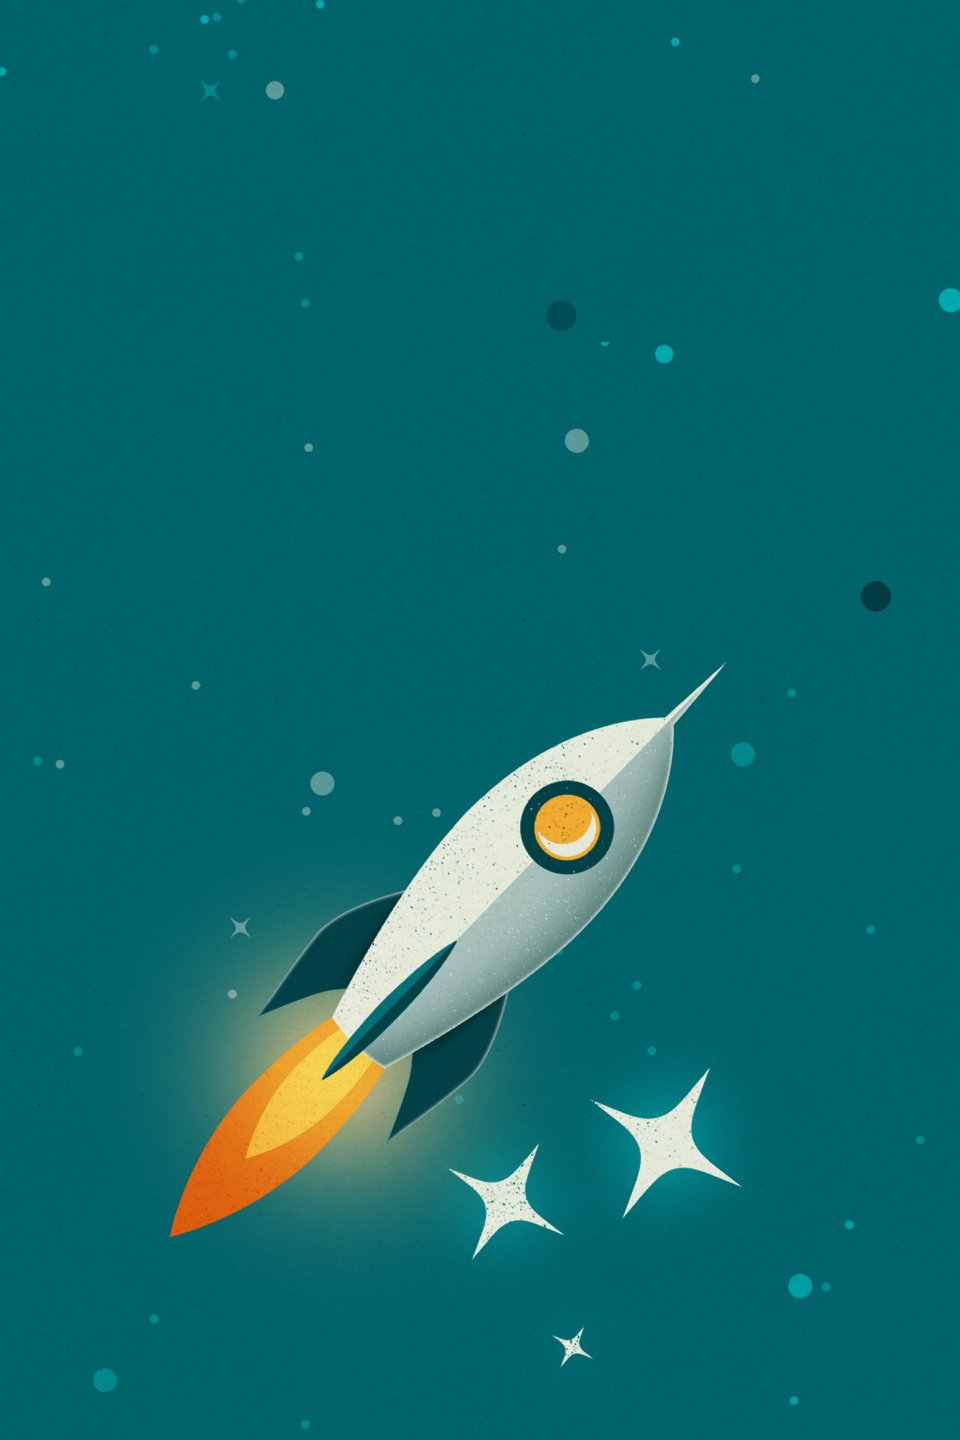 Rouse Limited Rocket in space illustration for mobile